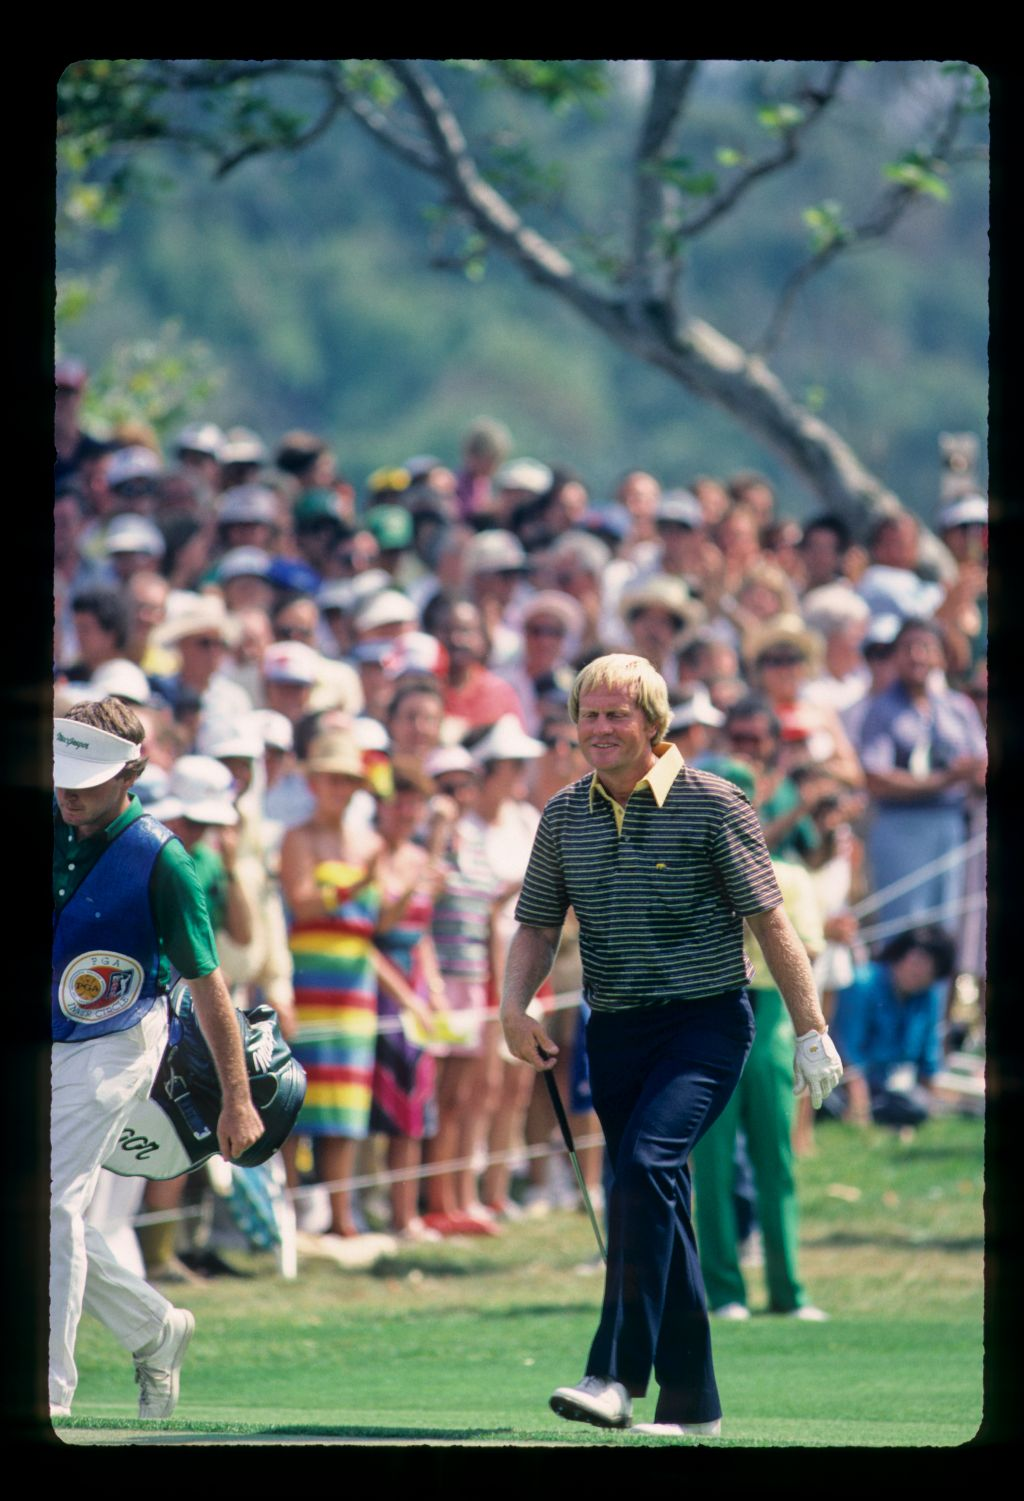 Jack Nicklaus smiling on the green during the 1983 USPGA